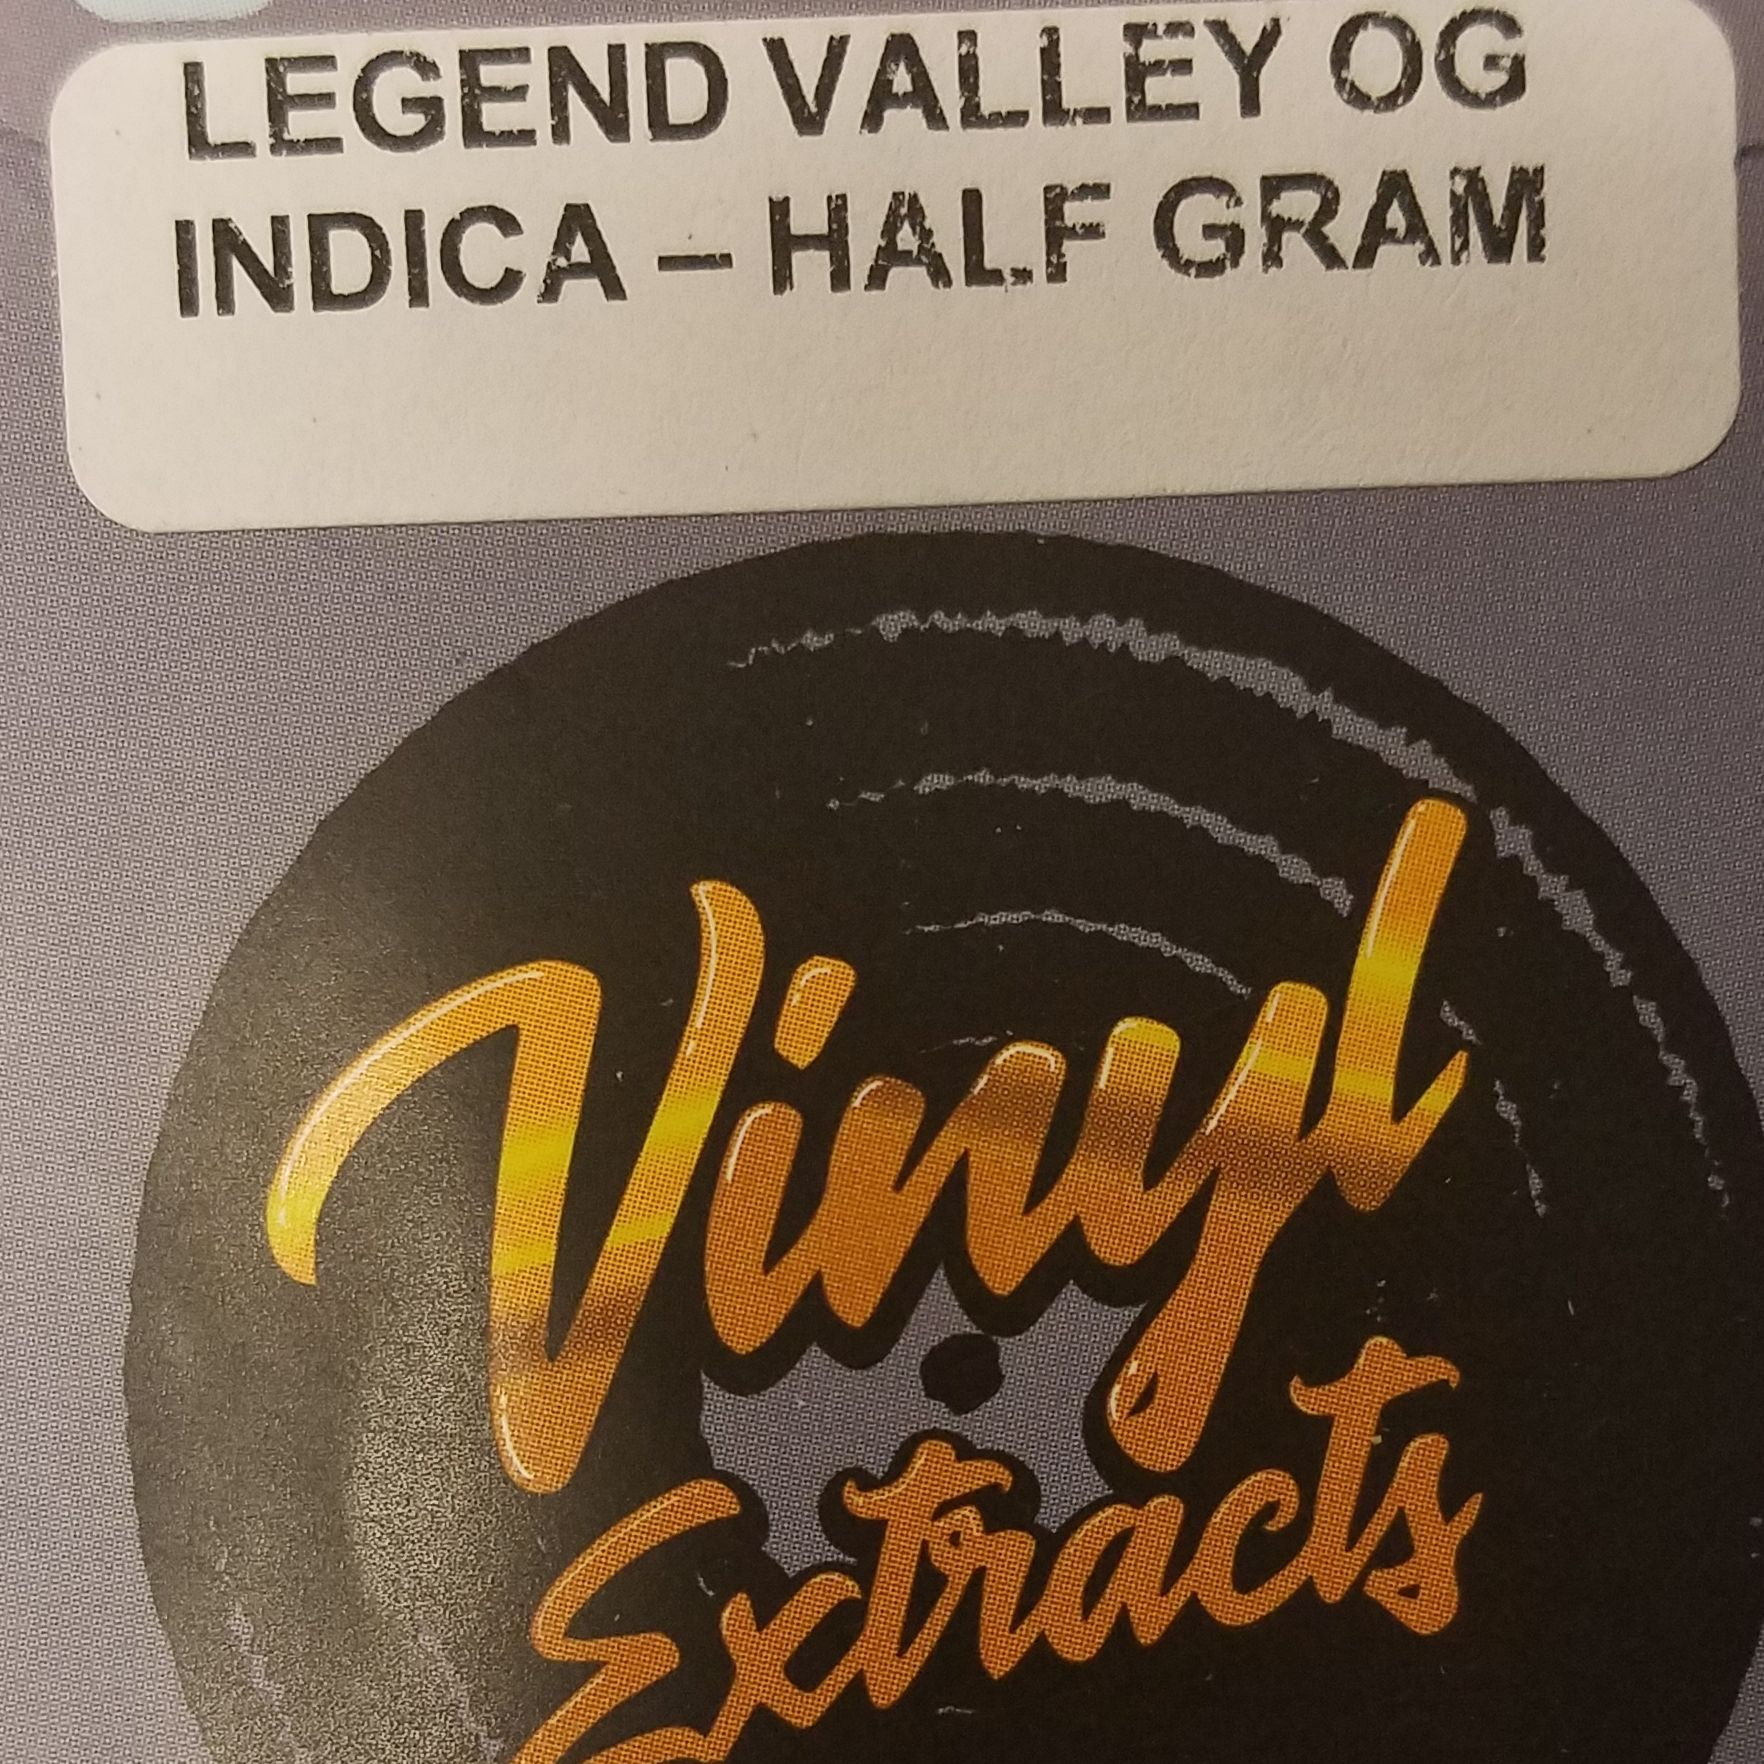 Vinyl Extracts-LegendValley OG .5g Shatter (I)